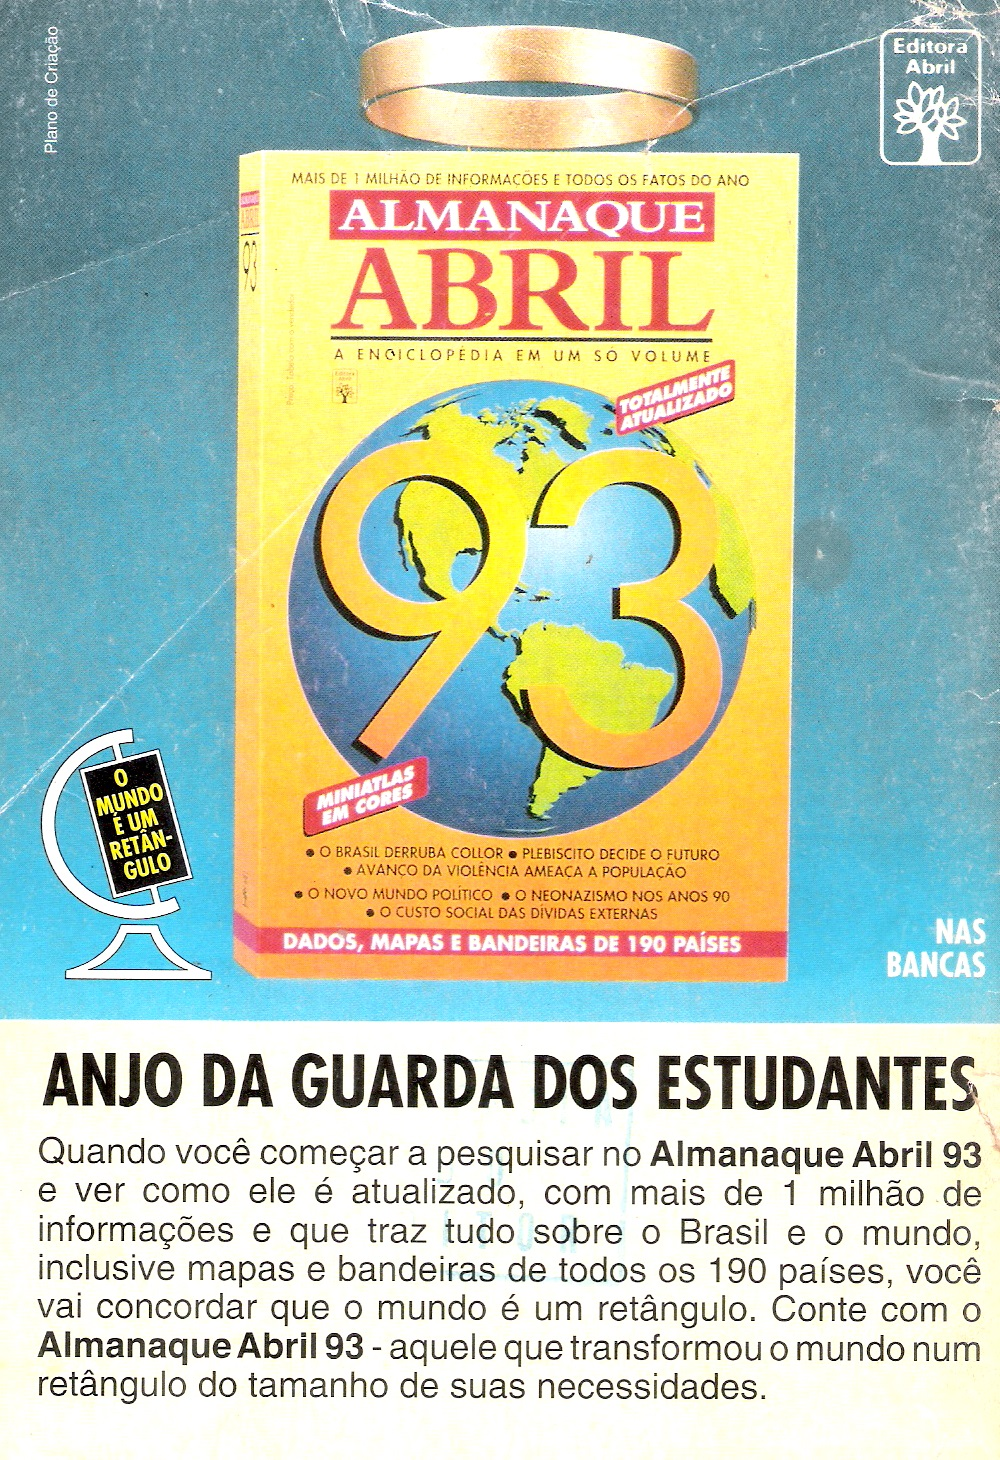 ATP1s10_09_Editora_Abril_Almanaque_Abril